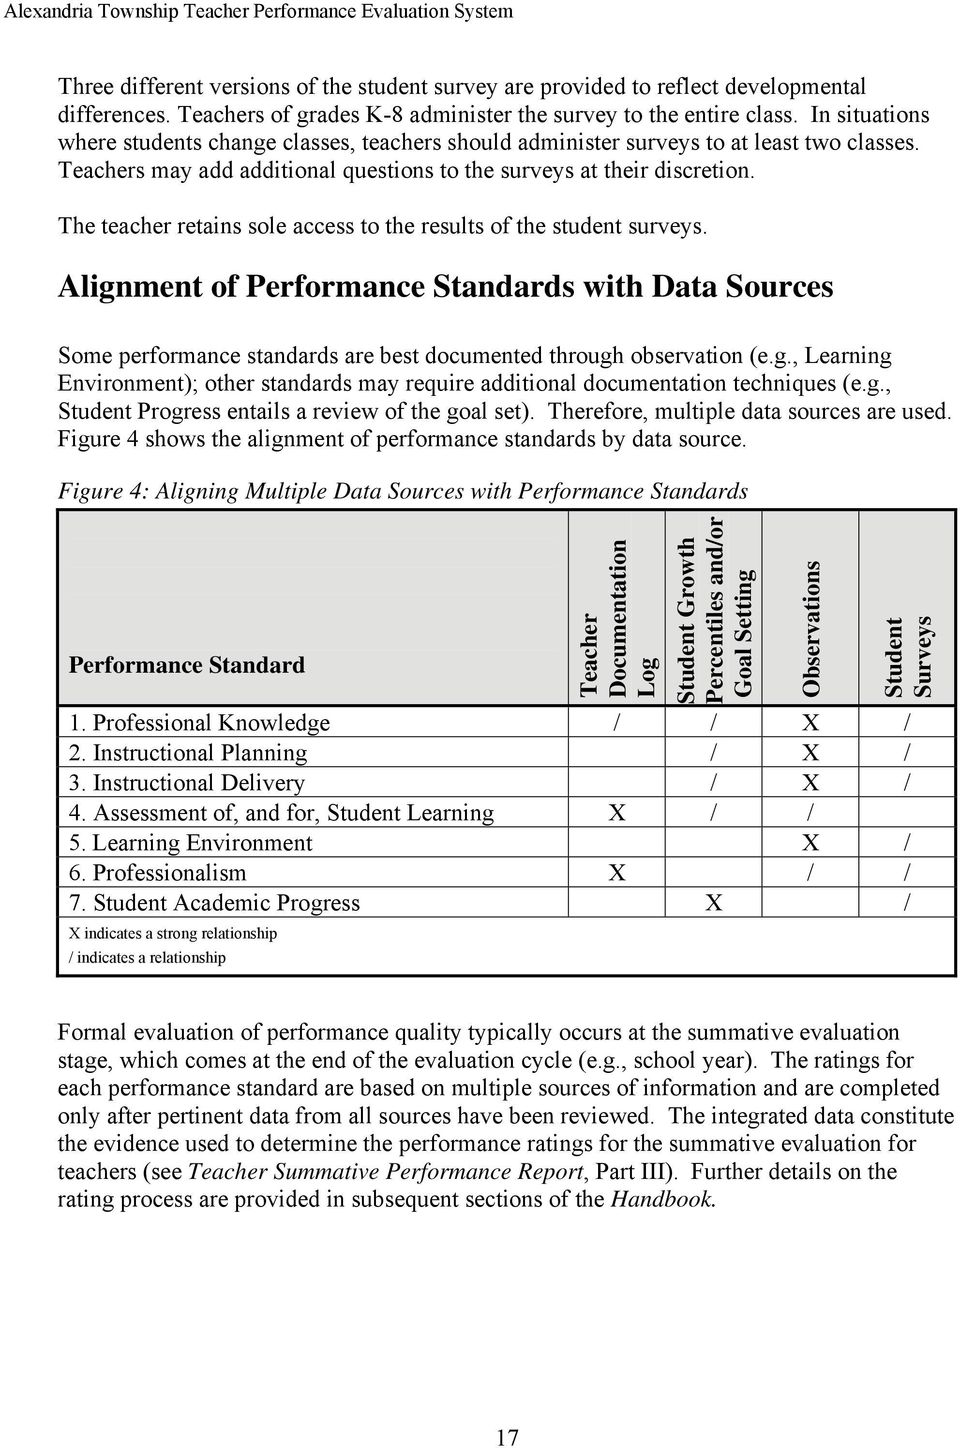 The teacher retains sole access to the results of the student surveys. Alignment of Performance Standards with Data Sources Some performance standards are best documented through observation (e.g., Learning Environment); other standards may require additional documentation techniques (e.